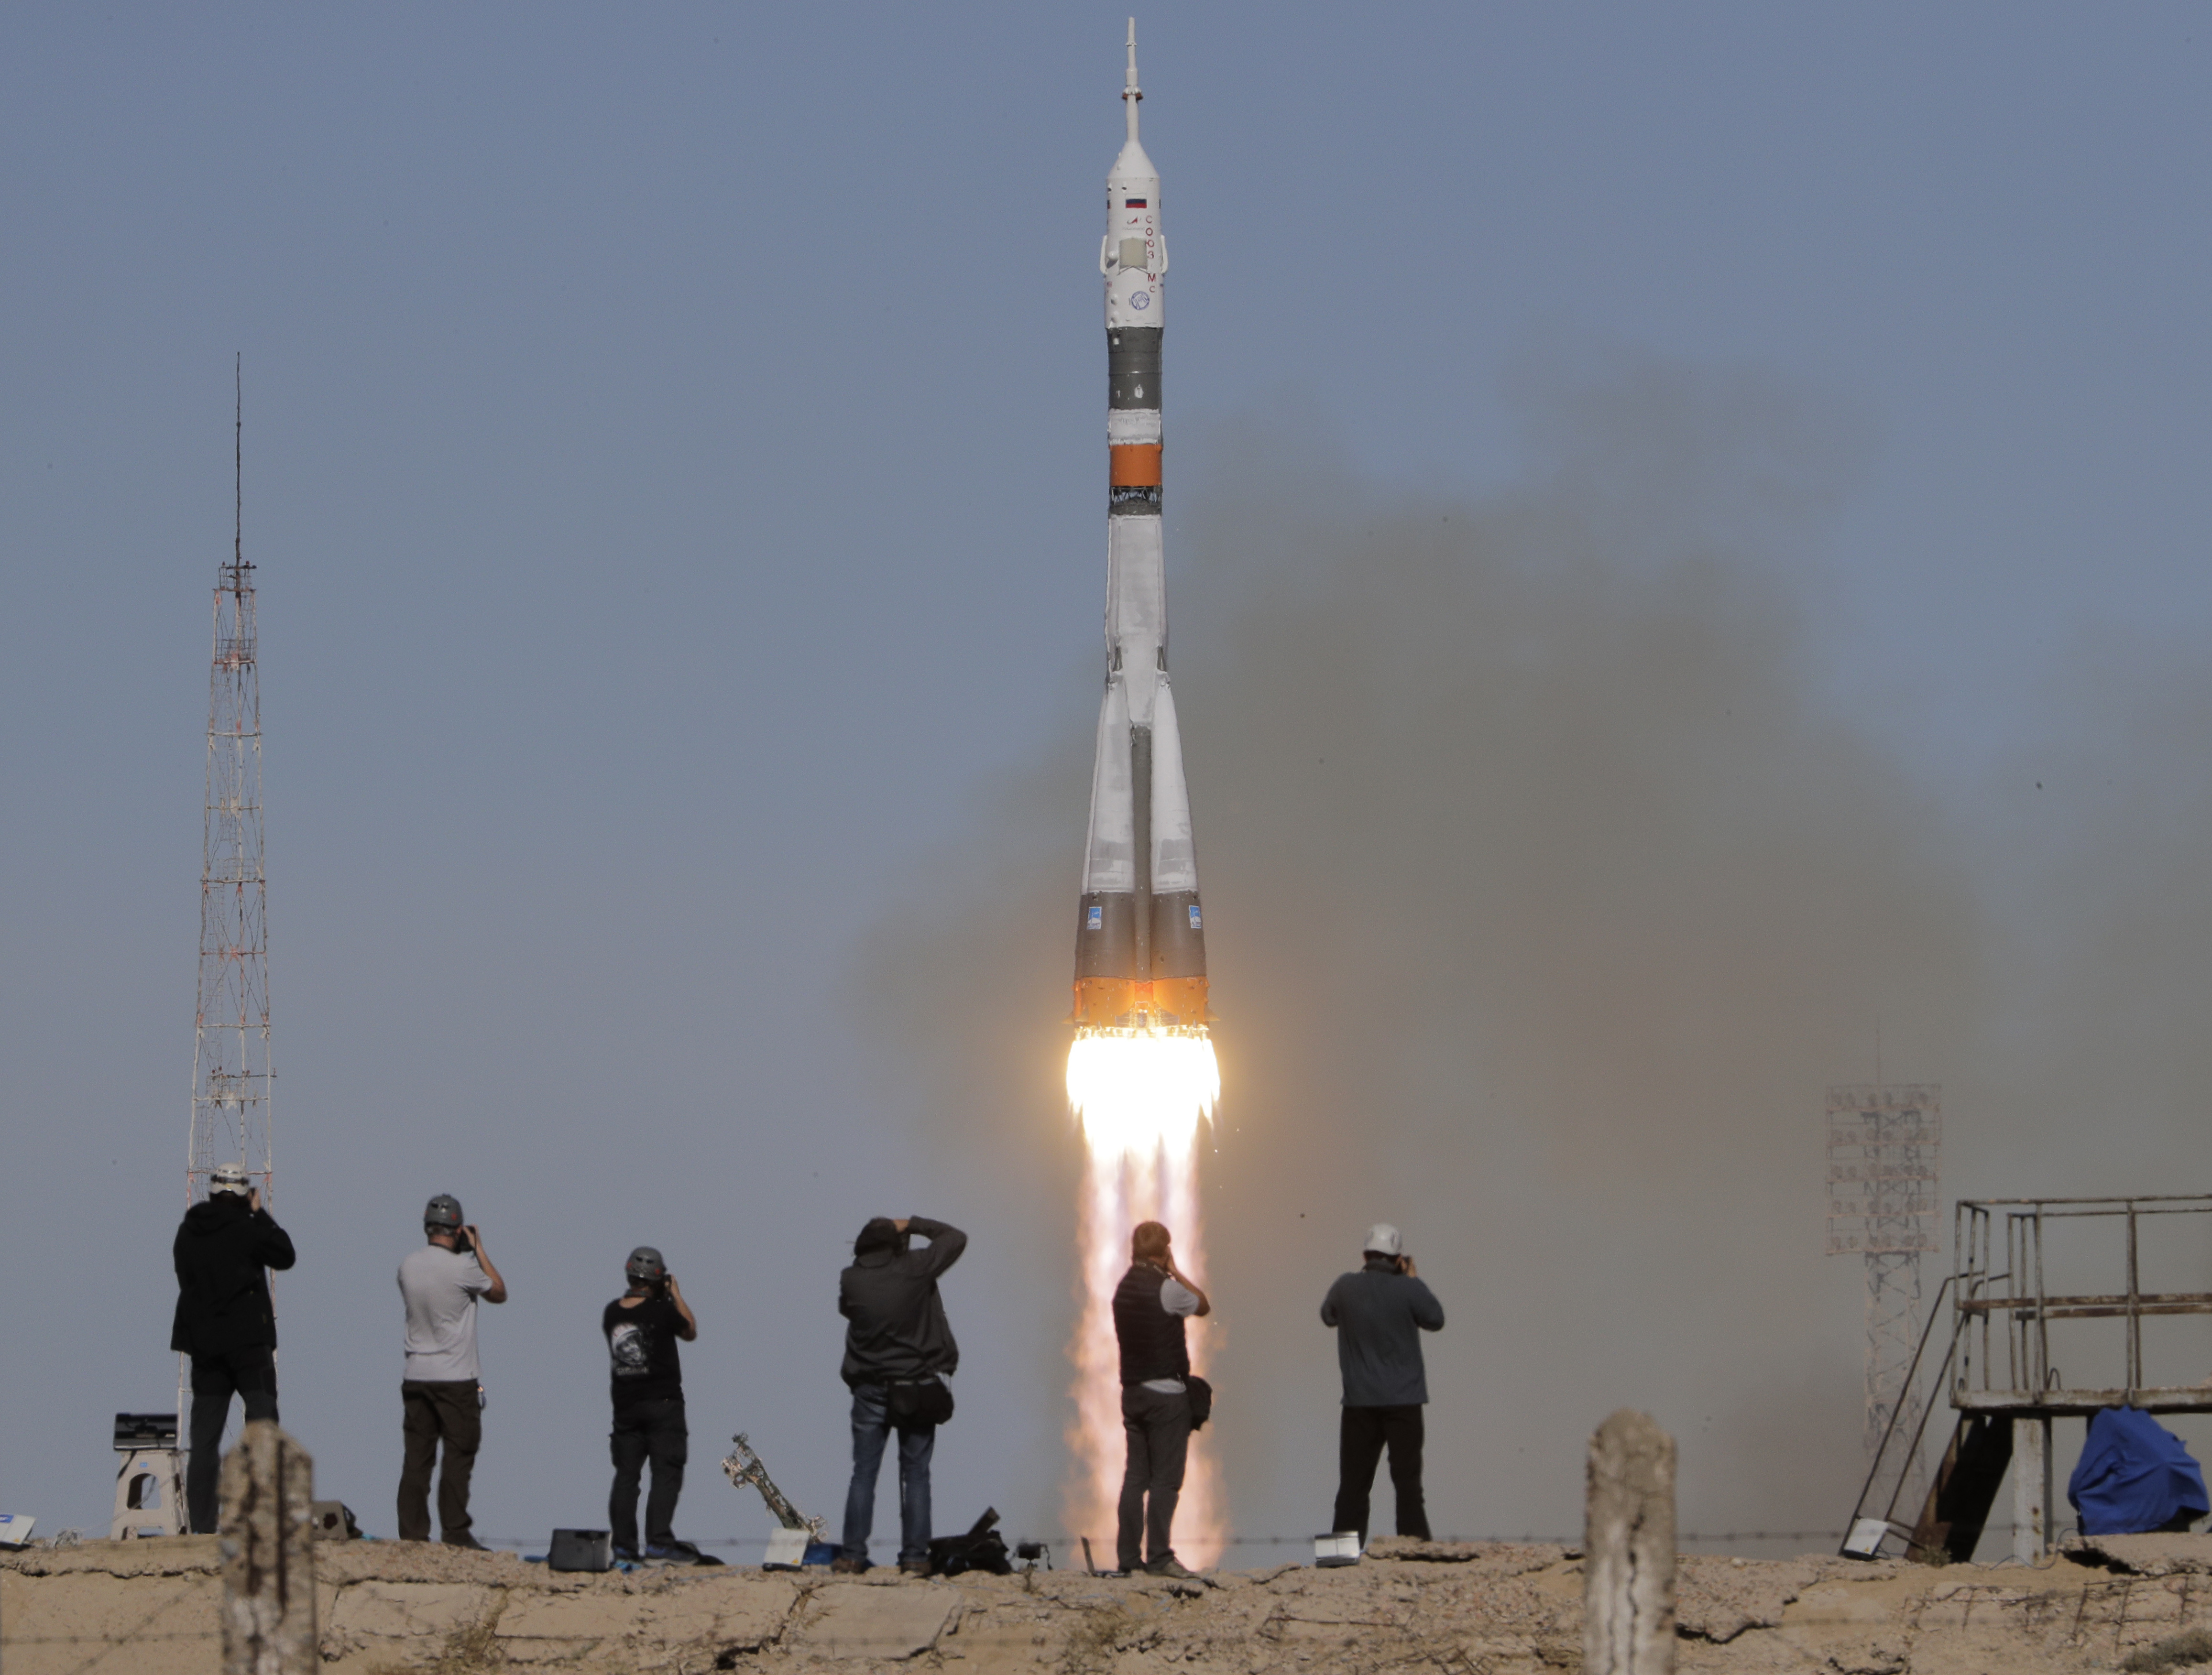 American, Russian alive after Soyuz rocket headed to space station fails on launch